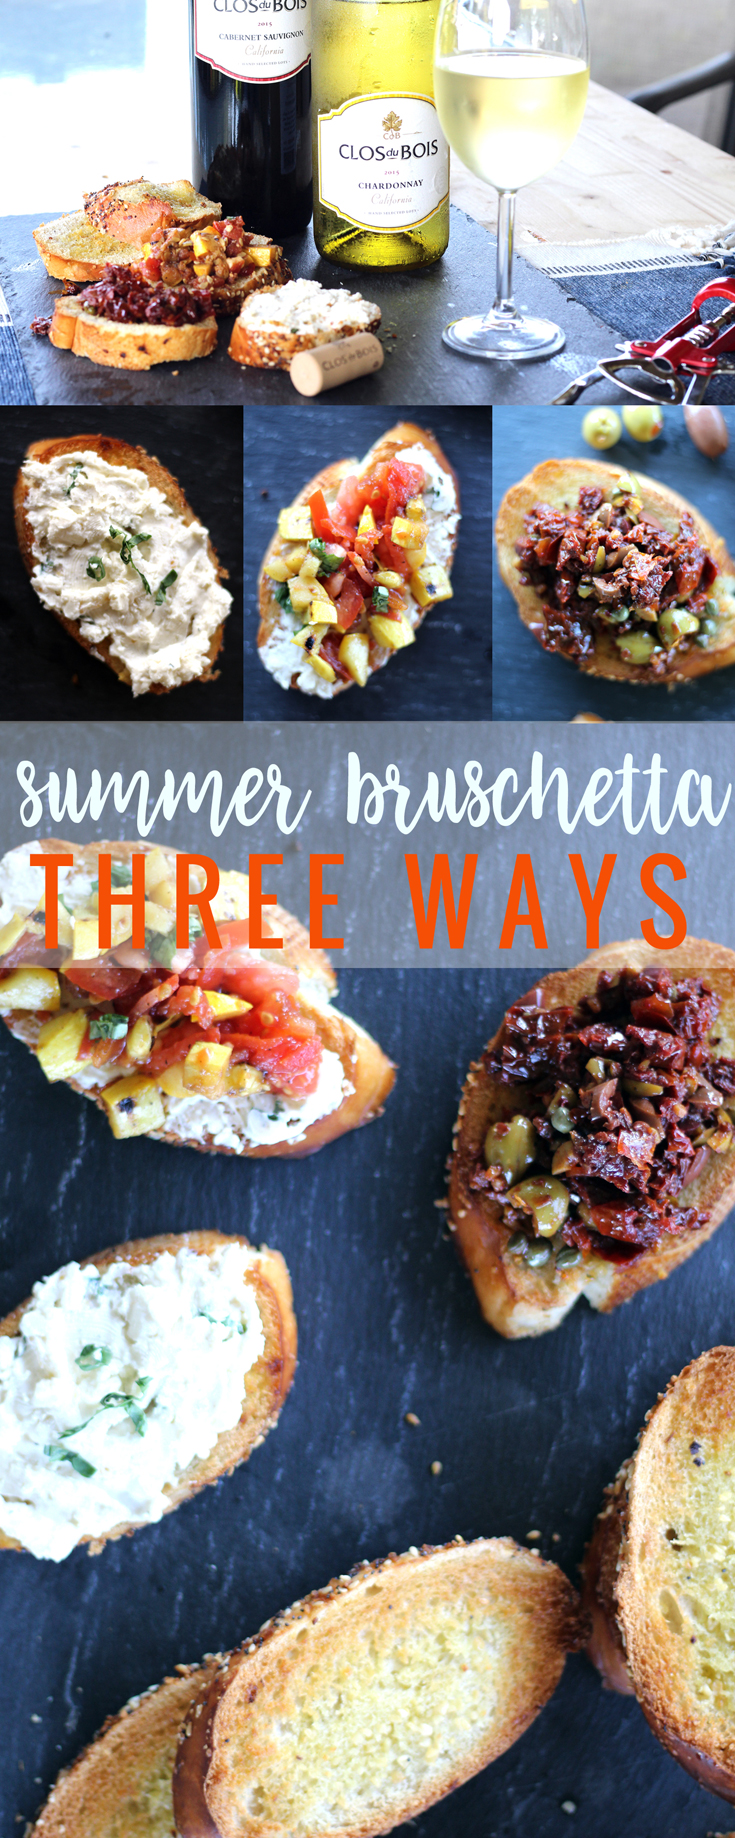 Have a summer afternoon to relax and unwind with bruschetta and wine? We created three recipe ideas for summer bruschetta perfect for special days.